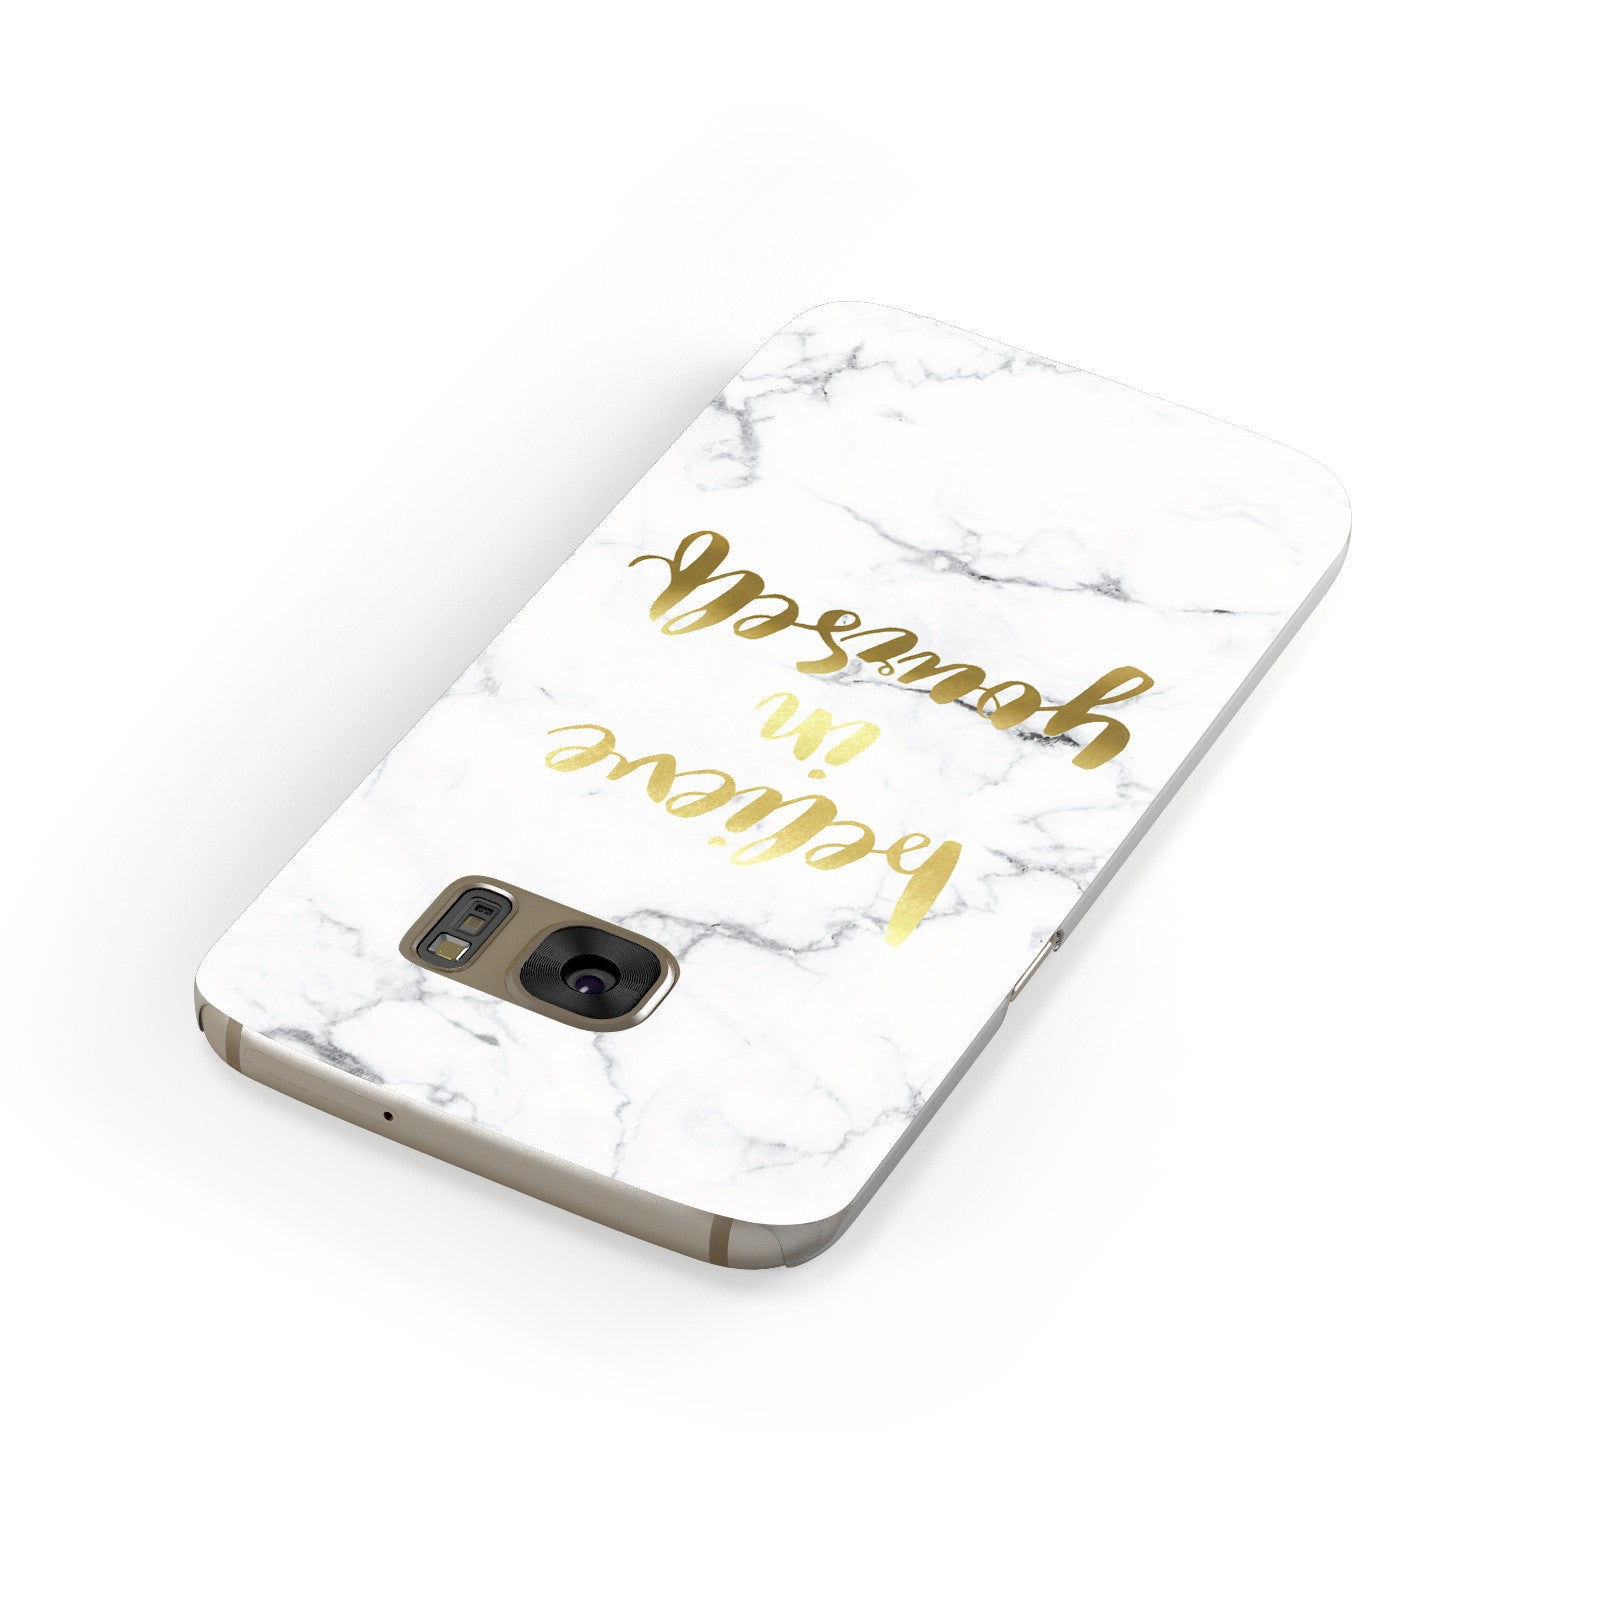 Believe In Yourself Gold Marble Samsung Galaxy Case Front Close Up